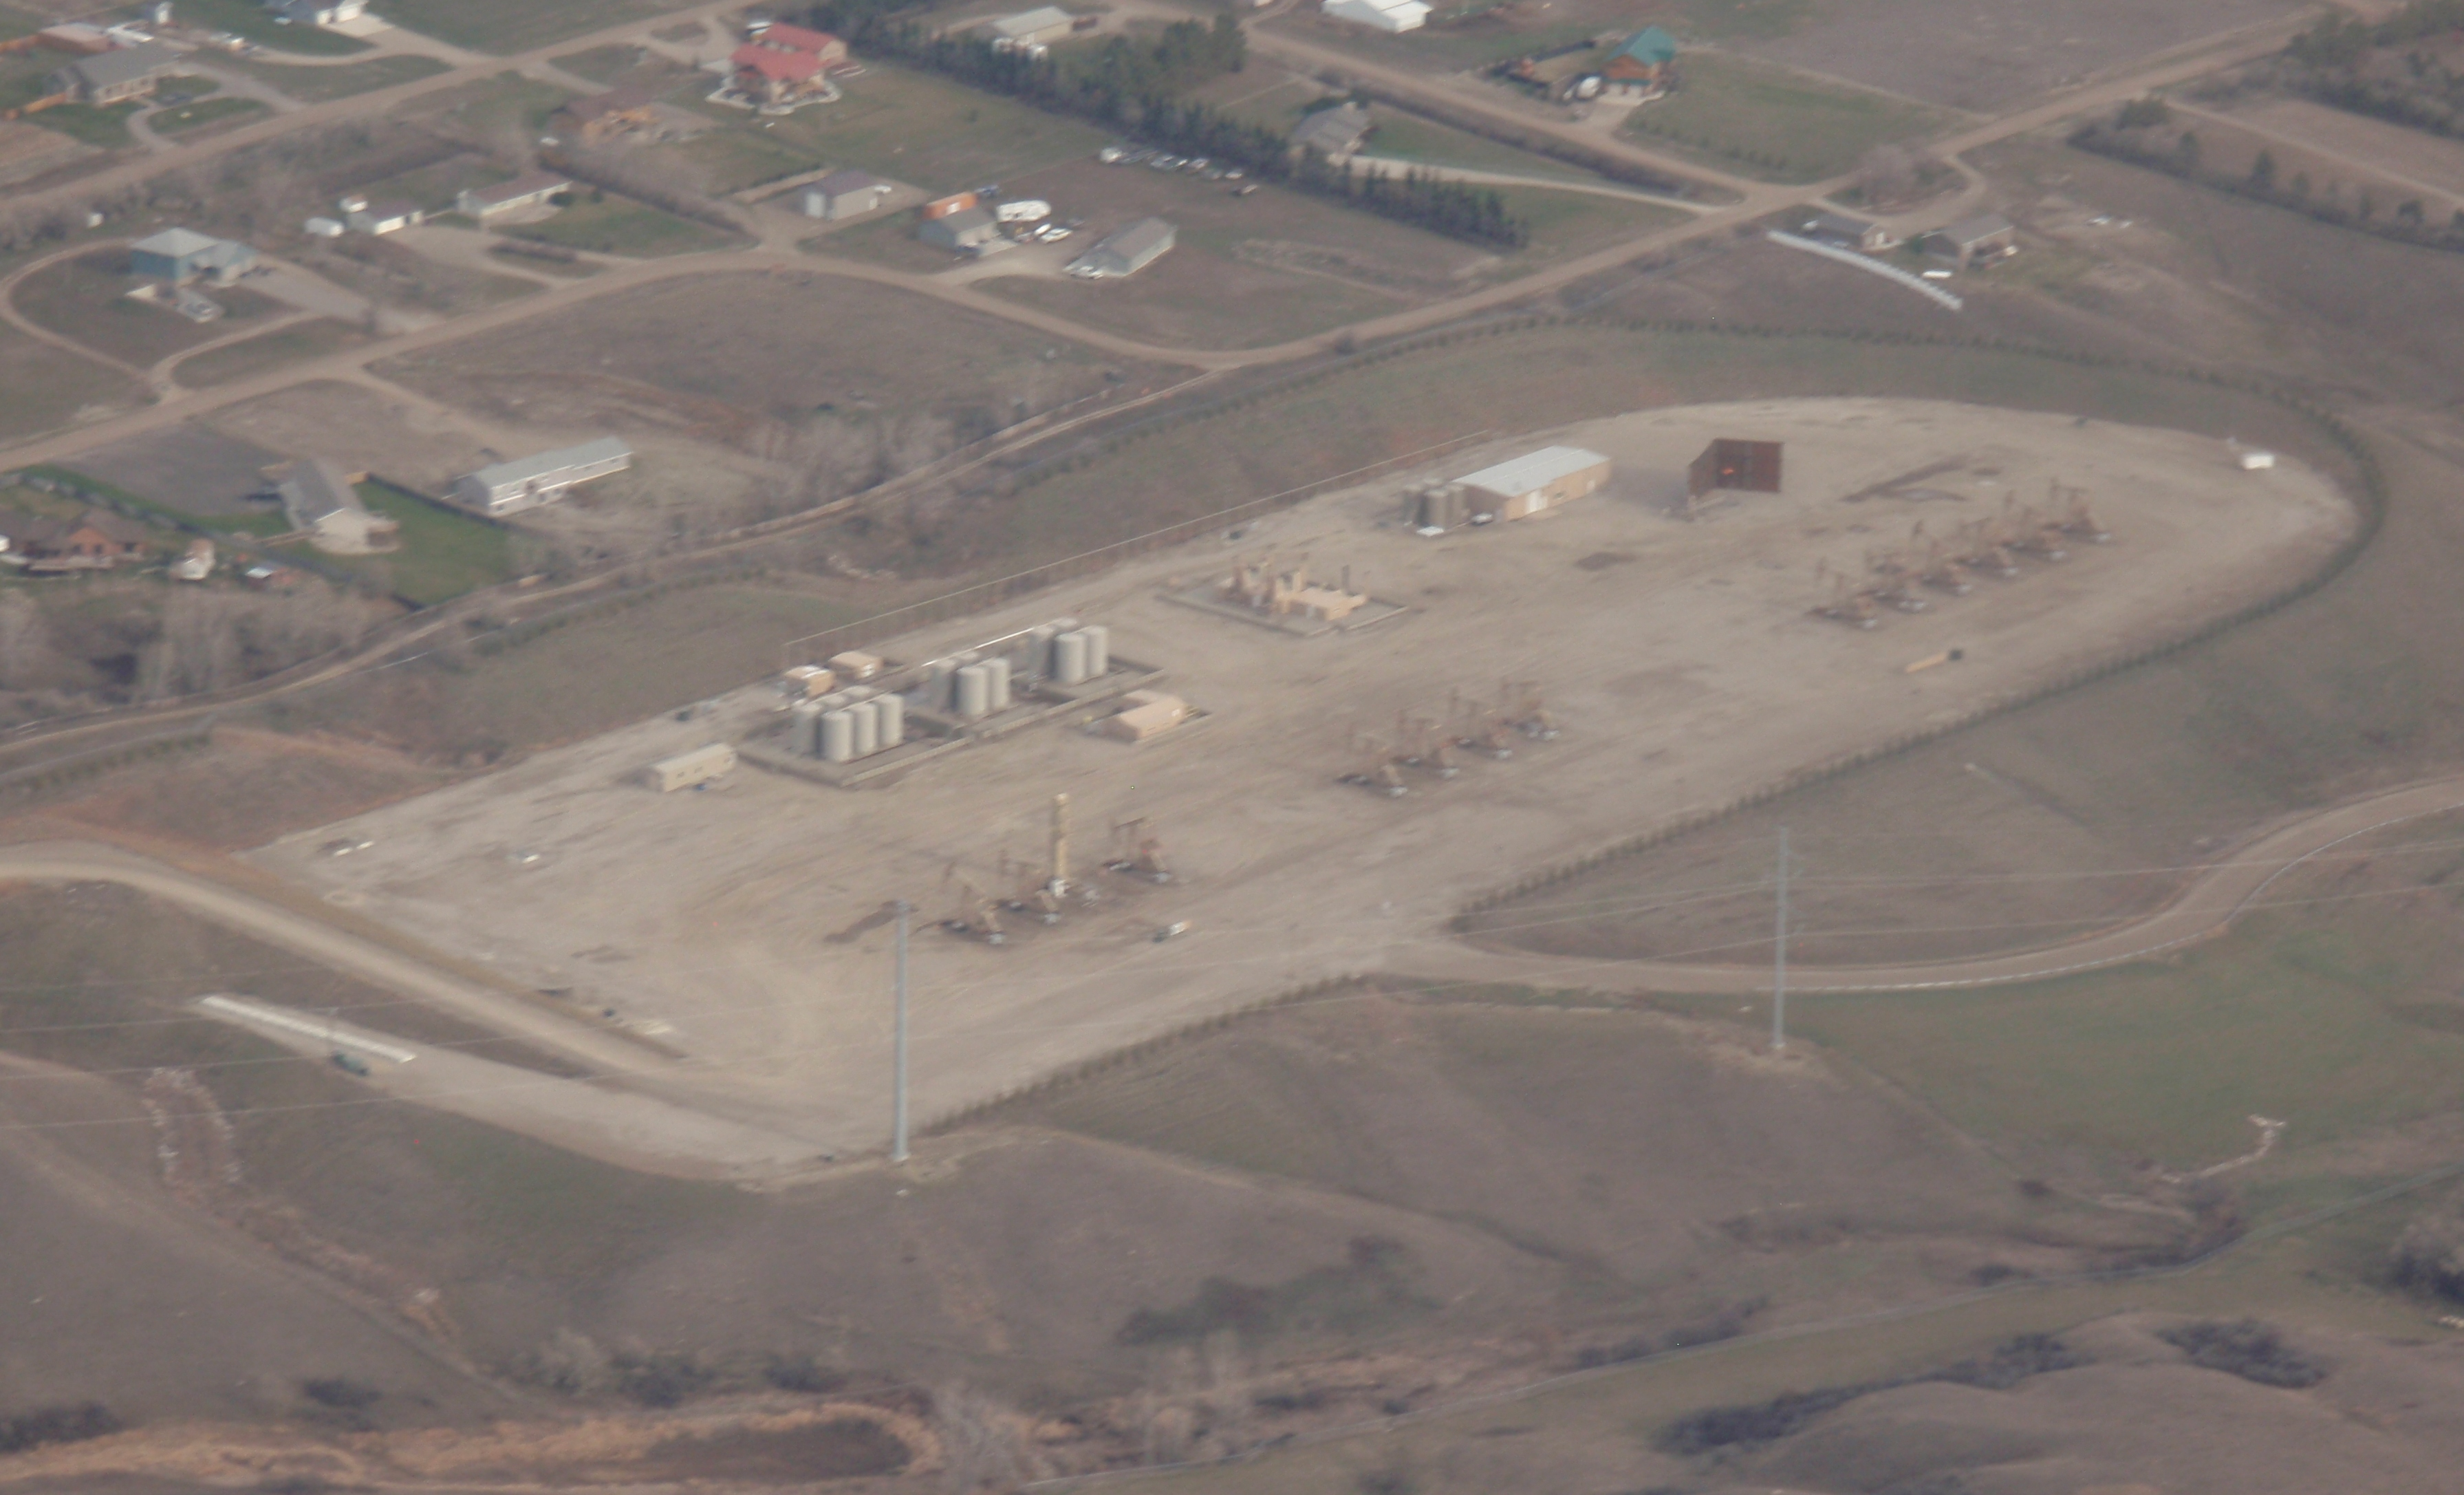 14 wells on one pad, southwest of Williston. Photo by James Ulvog.